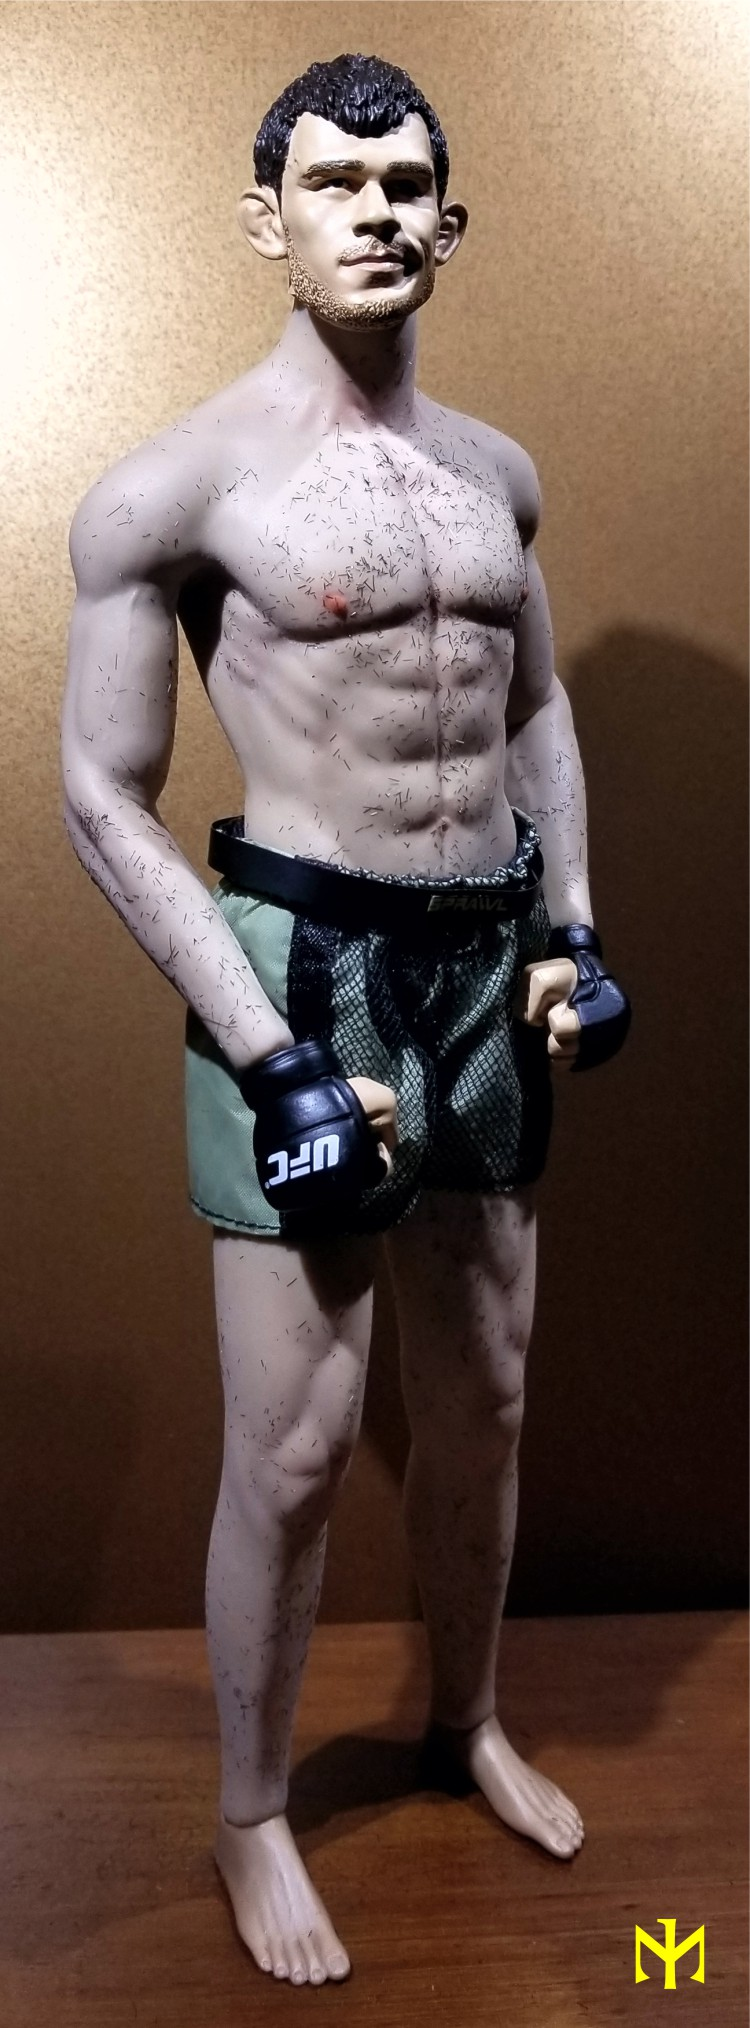 ufc - Kitbash UFC Champion Forrest Griffin Forgri21